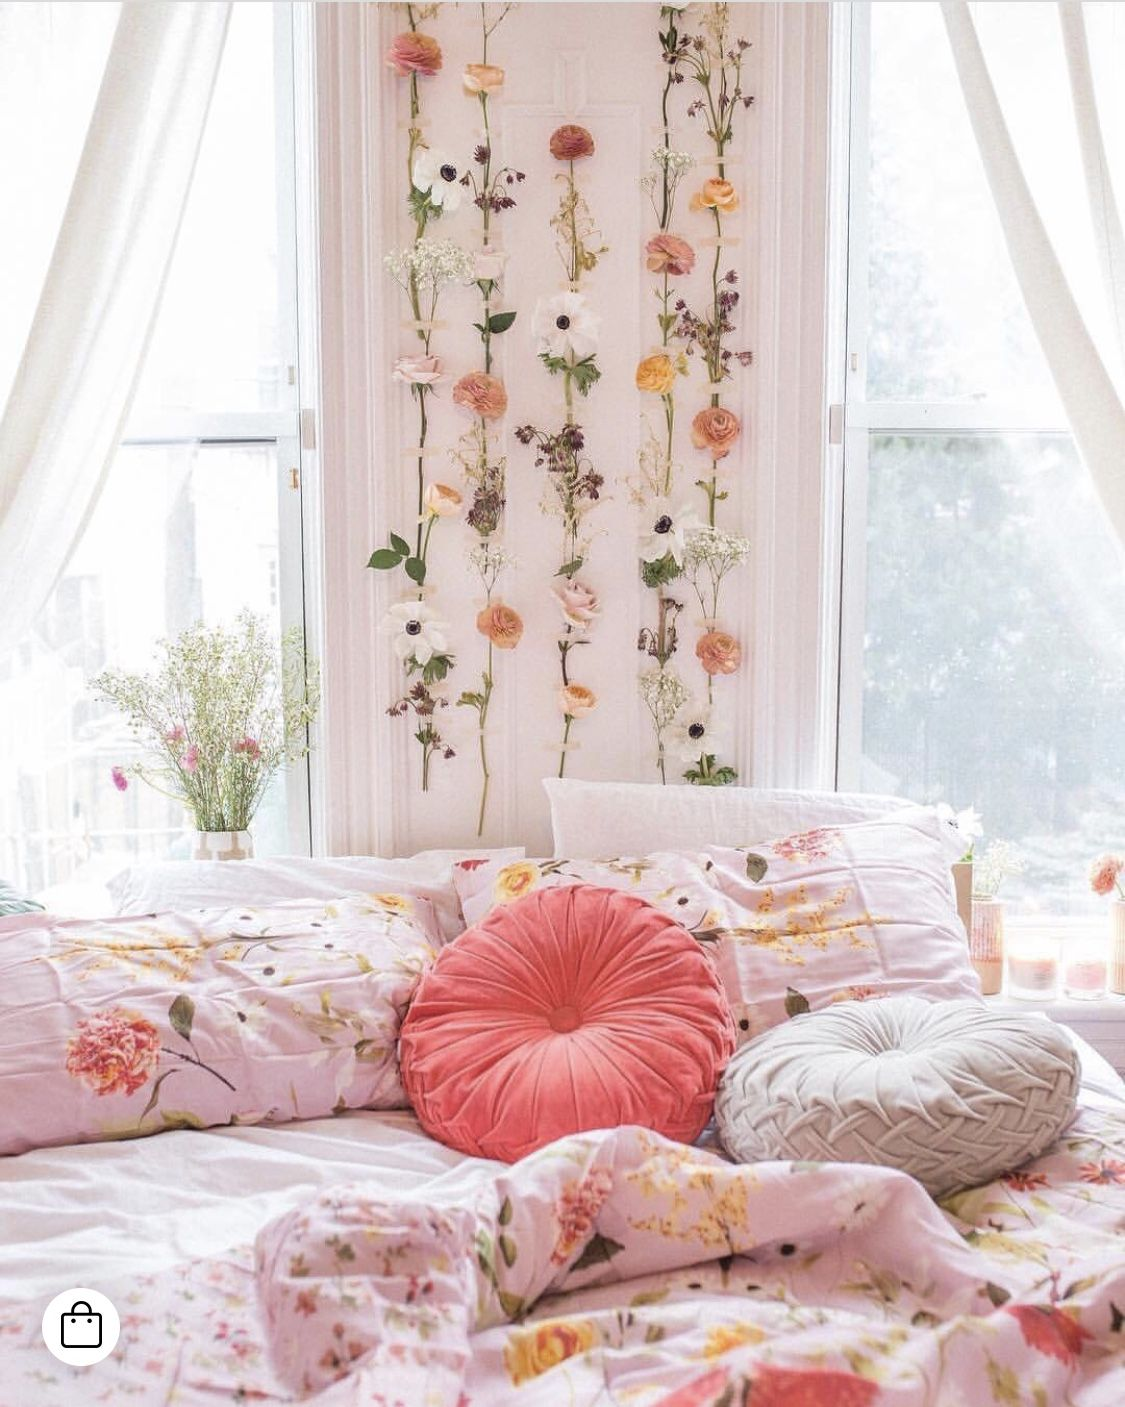 Floral Room Decor With Images Bedroom Decor Aesthetic Rooms